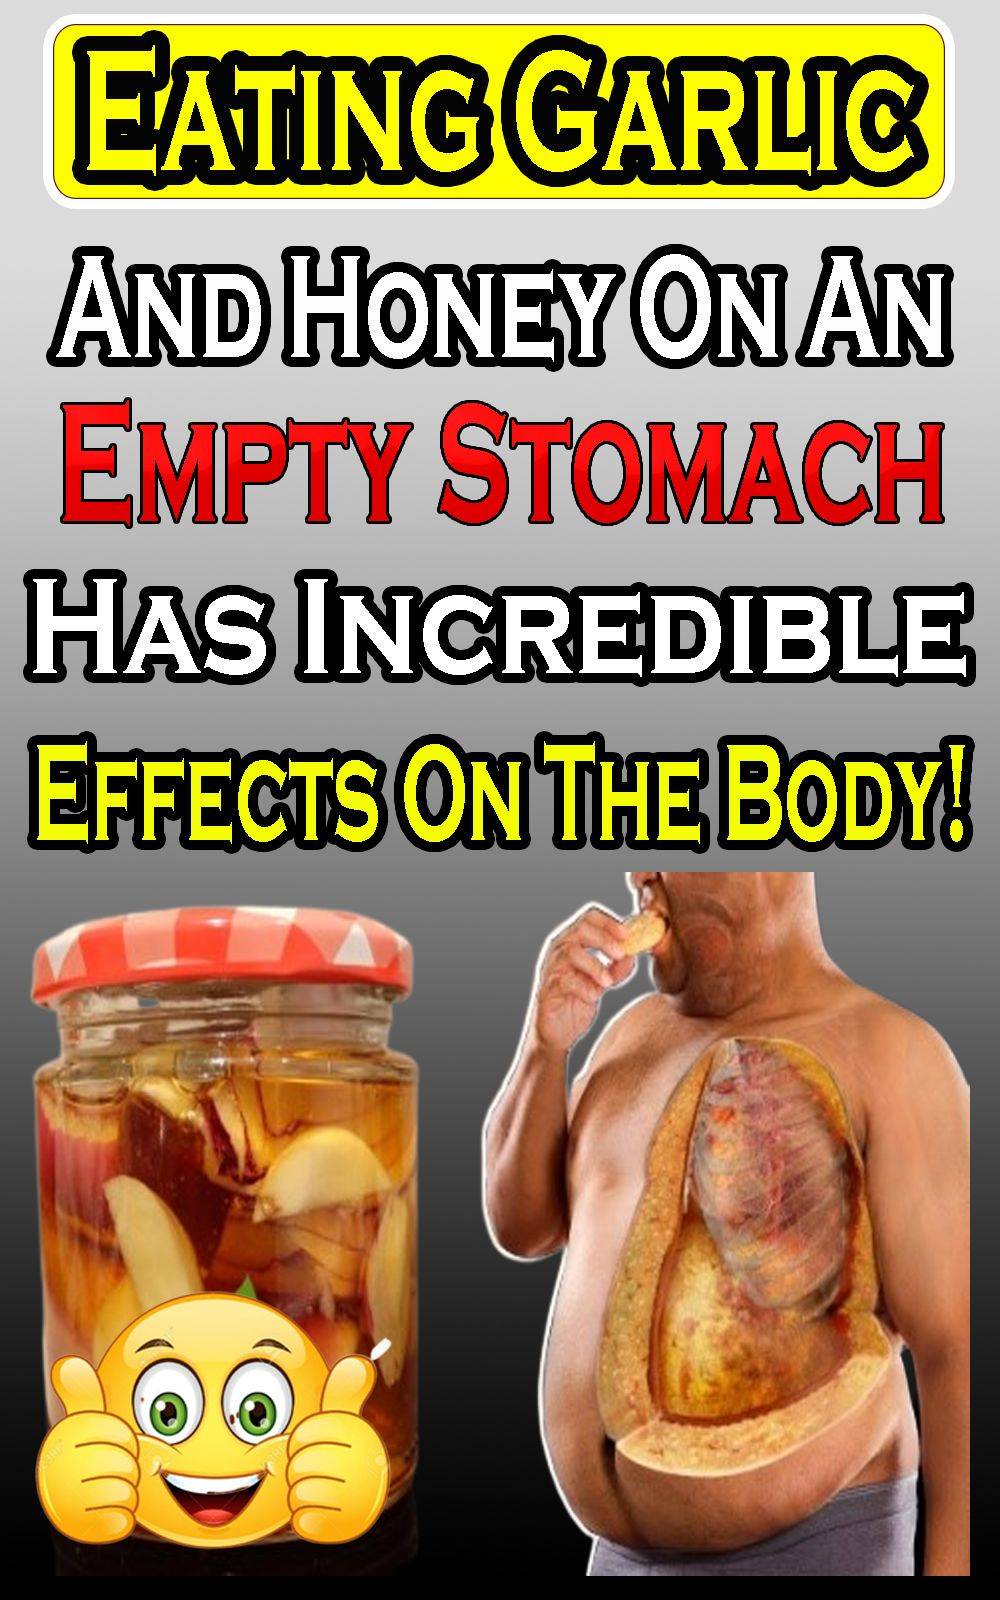 eating garlic and honey on an empty stomach has incredible